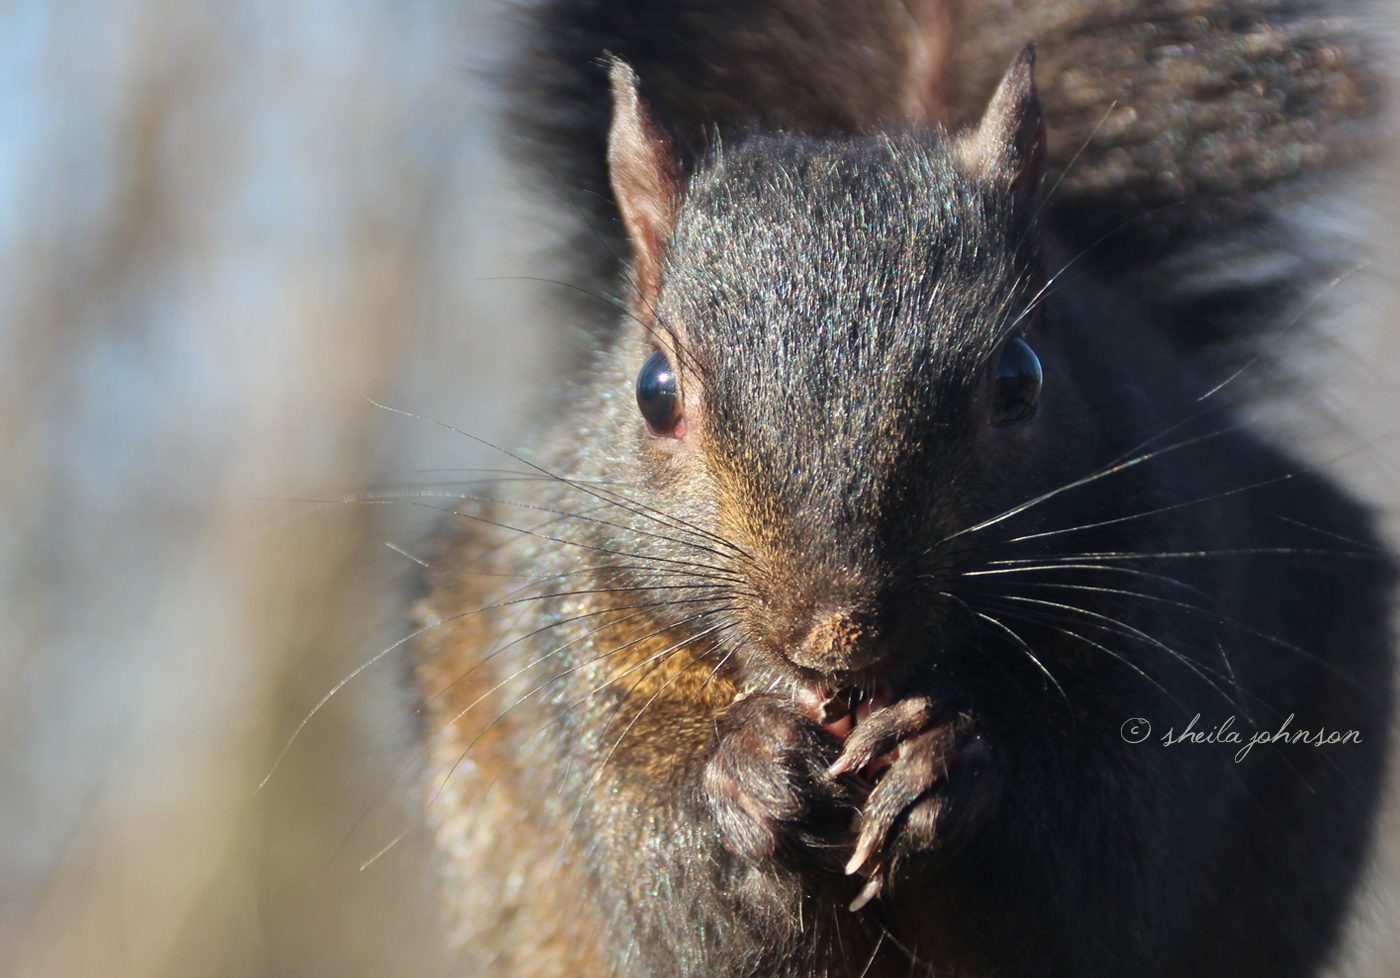 Though The Sunlight Makes Him Look Like A Typical Gray Squirrel, This Is A Black Squirrel (A Melanistic Subgroup Of The Gray). In The United States, They're Common In The Northeast And Midwest.